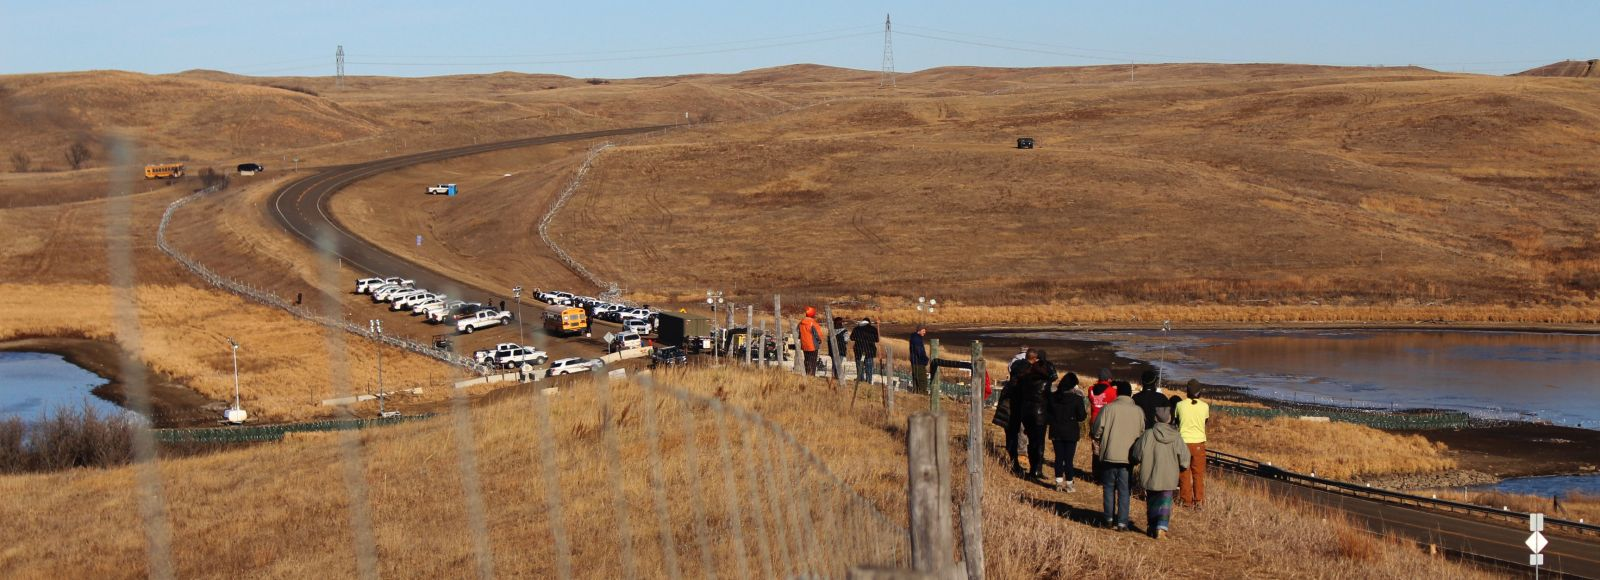 people walk along a fence in the northern great plains